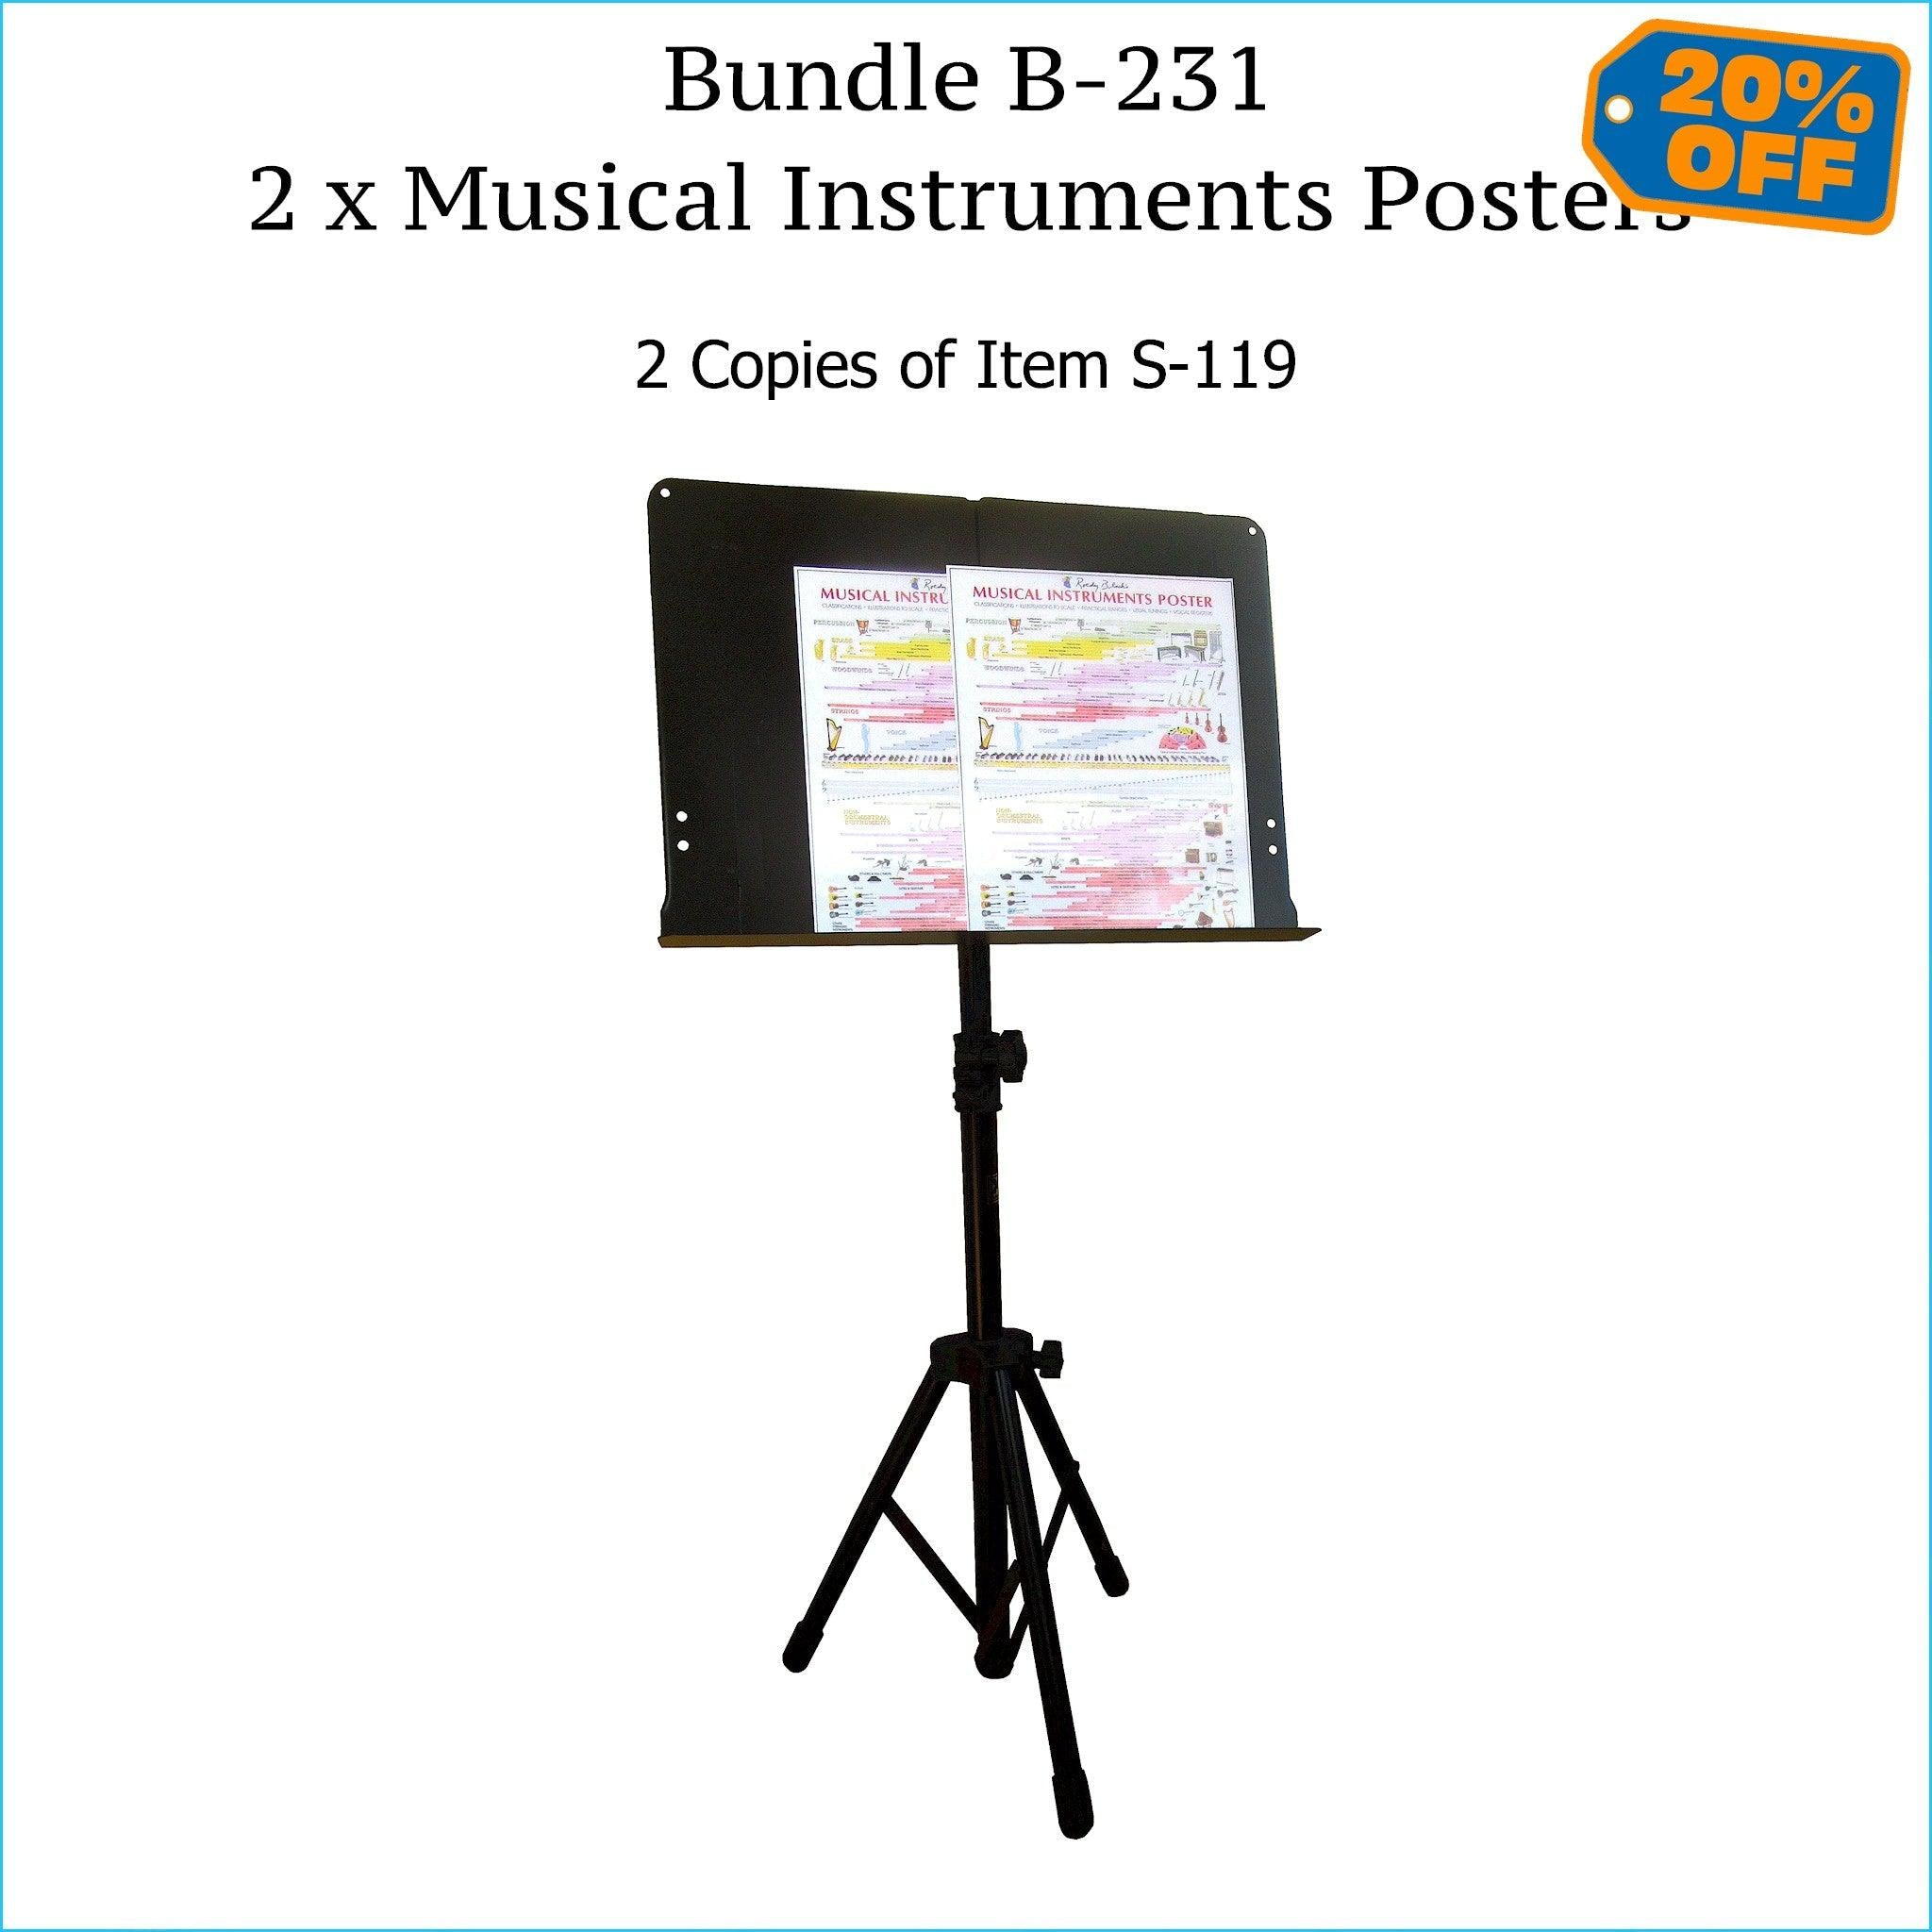 Two musical instruments posters, music stand size.